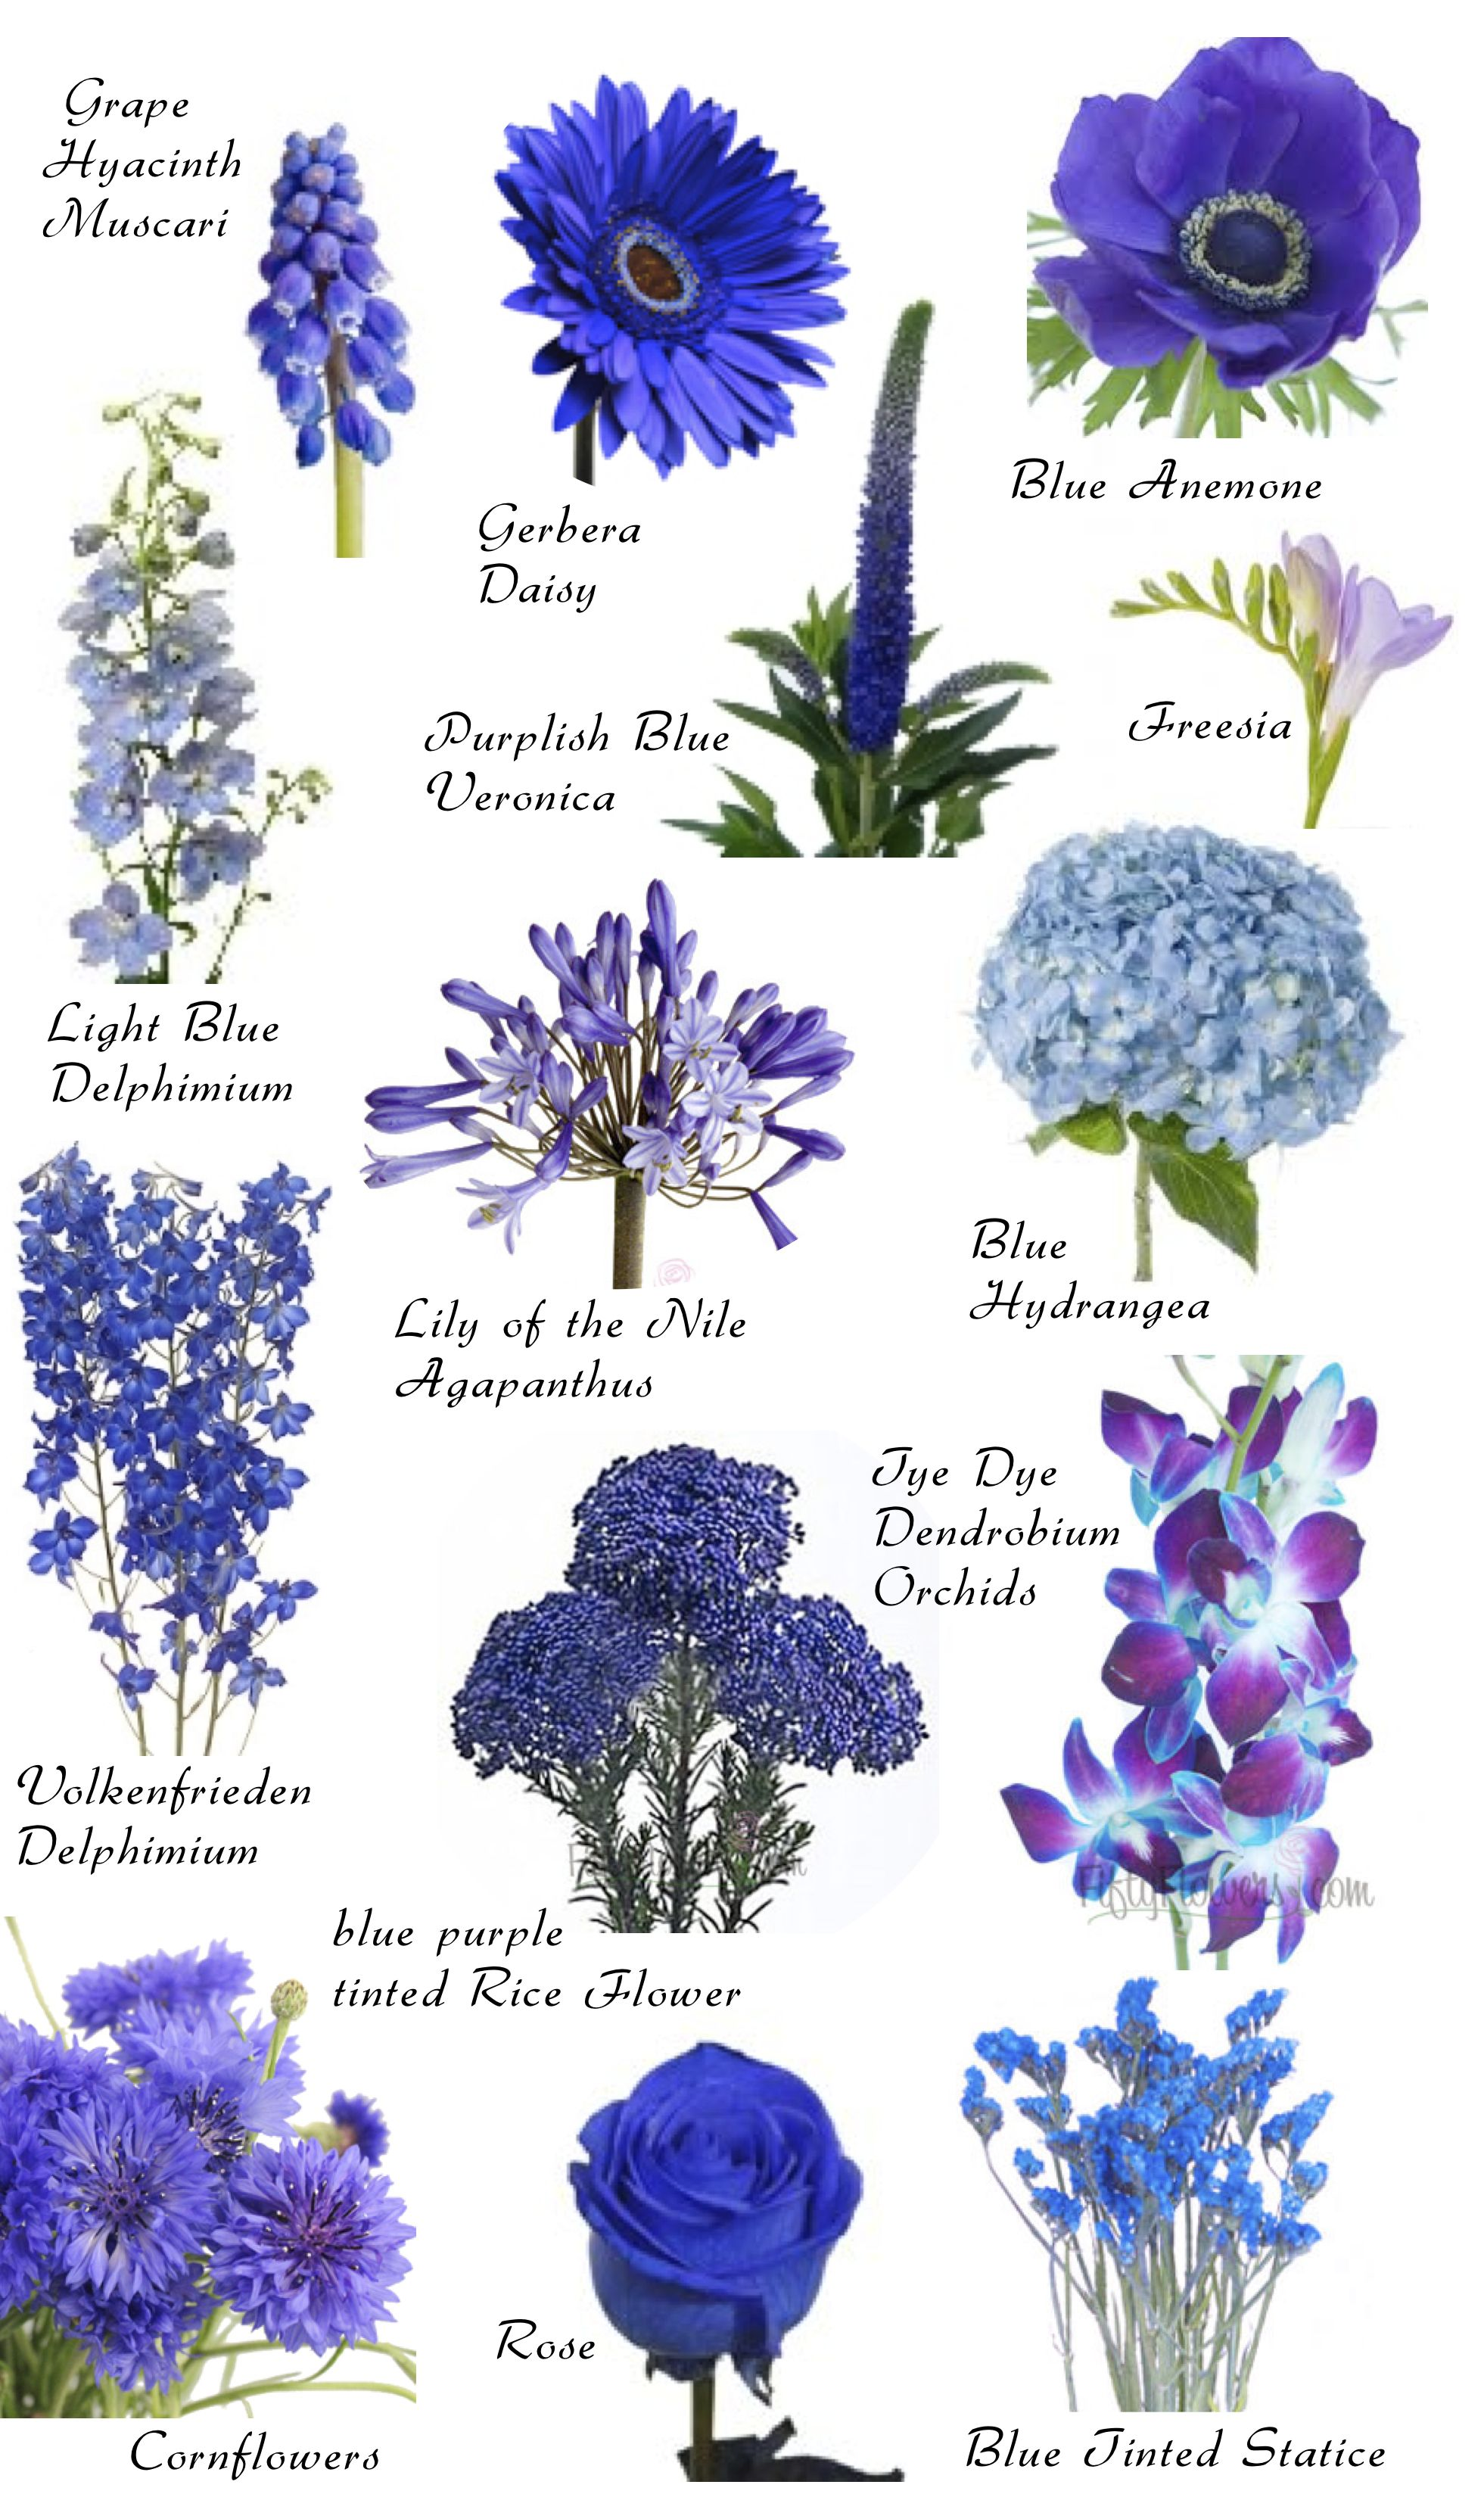 Flower names by color arts and crafts pinterest flowers so many flowers flowers by color so amazing and helpful izmirmasajfo